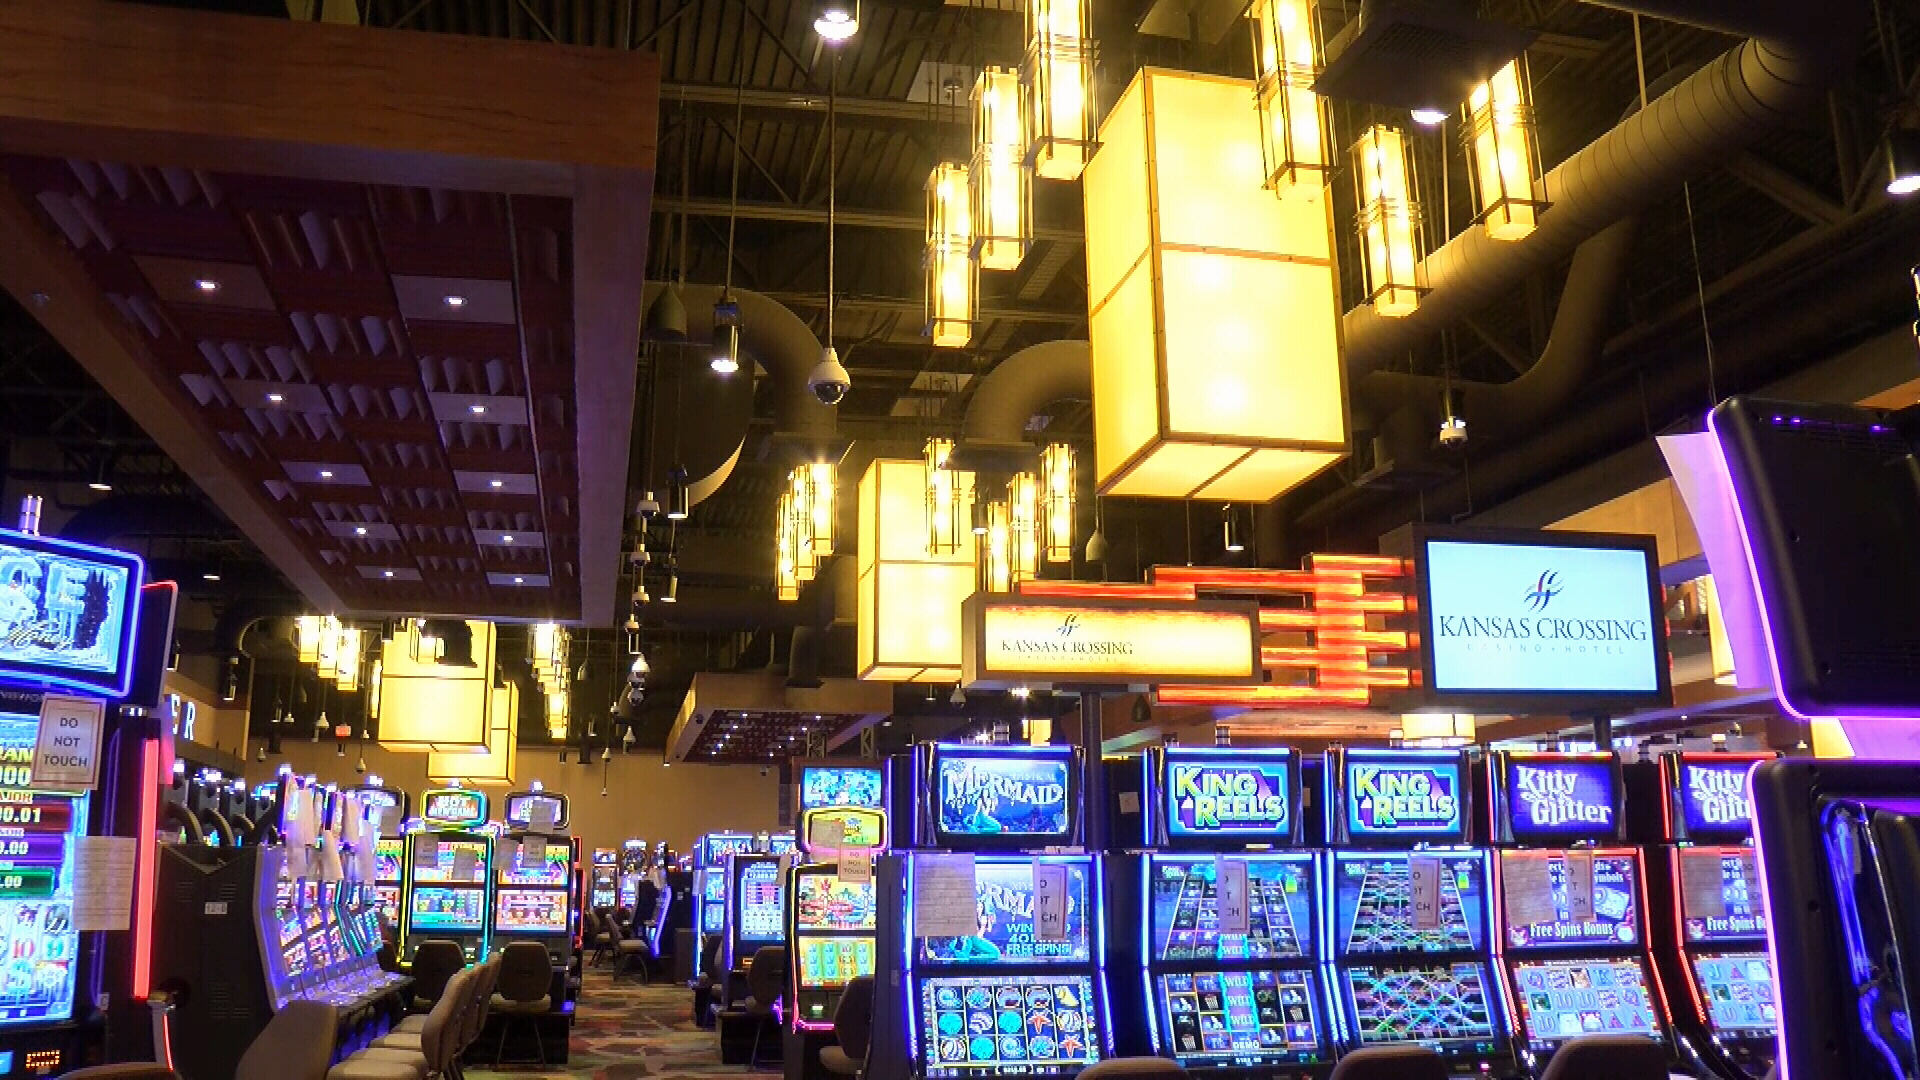 Kansas Crossing Casino inside